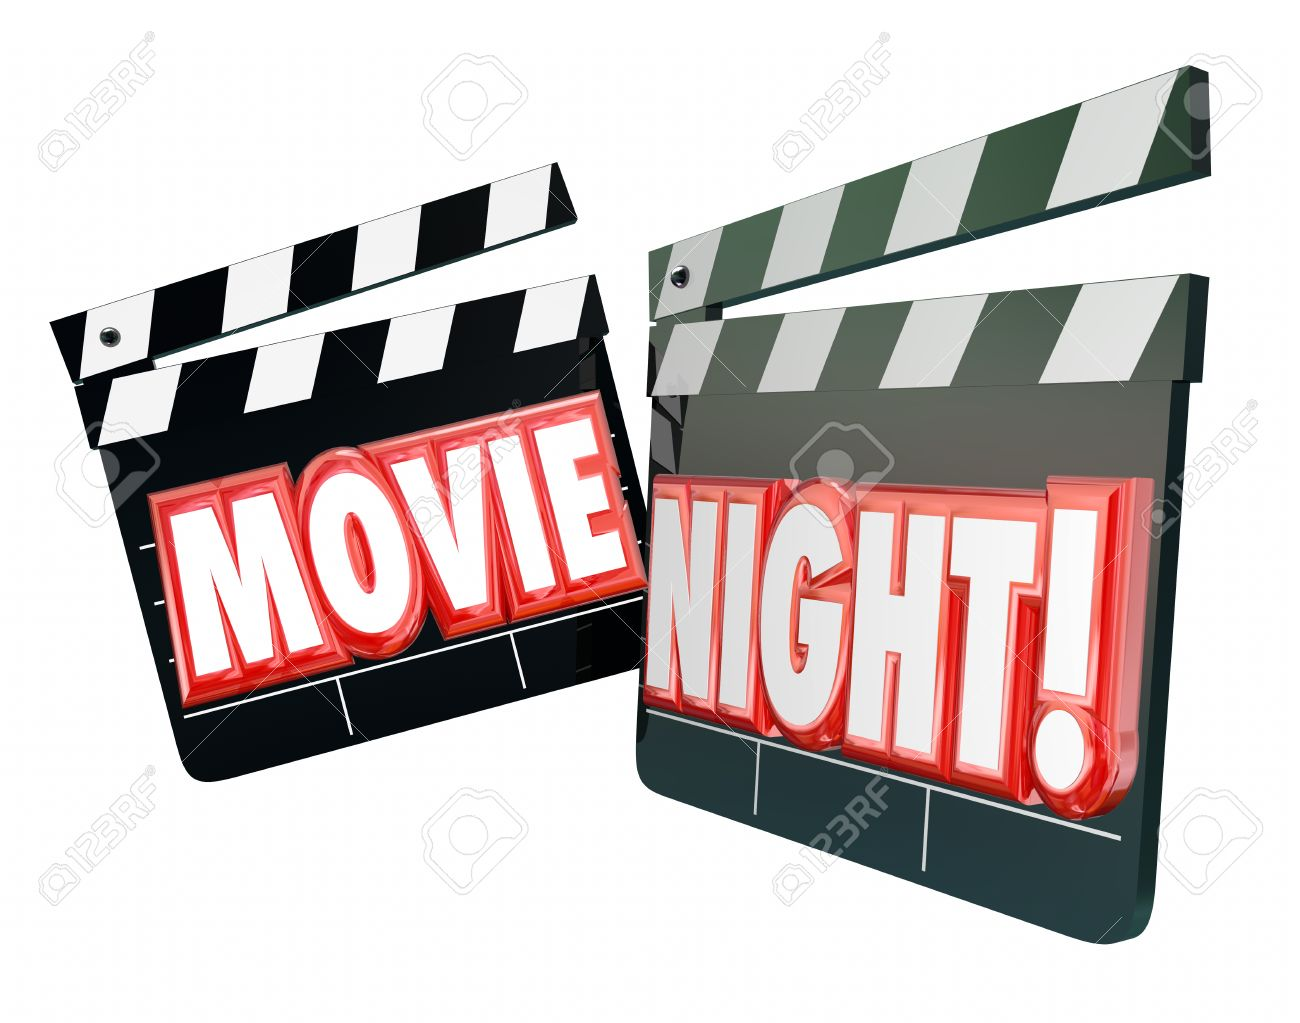 1300x1023 Family Movie Night Stock Photos. Royalty Free Family Movie Night